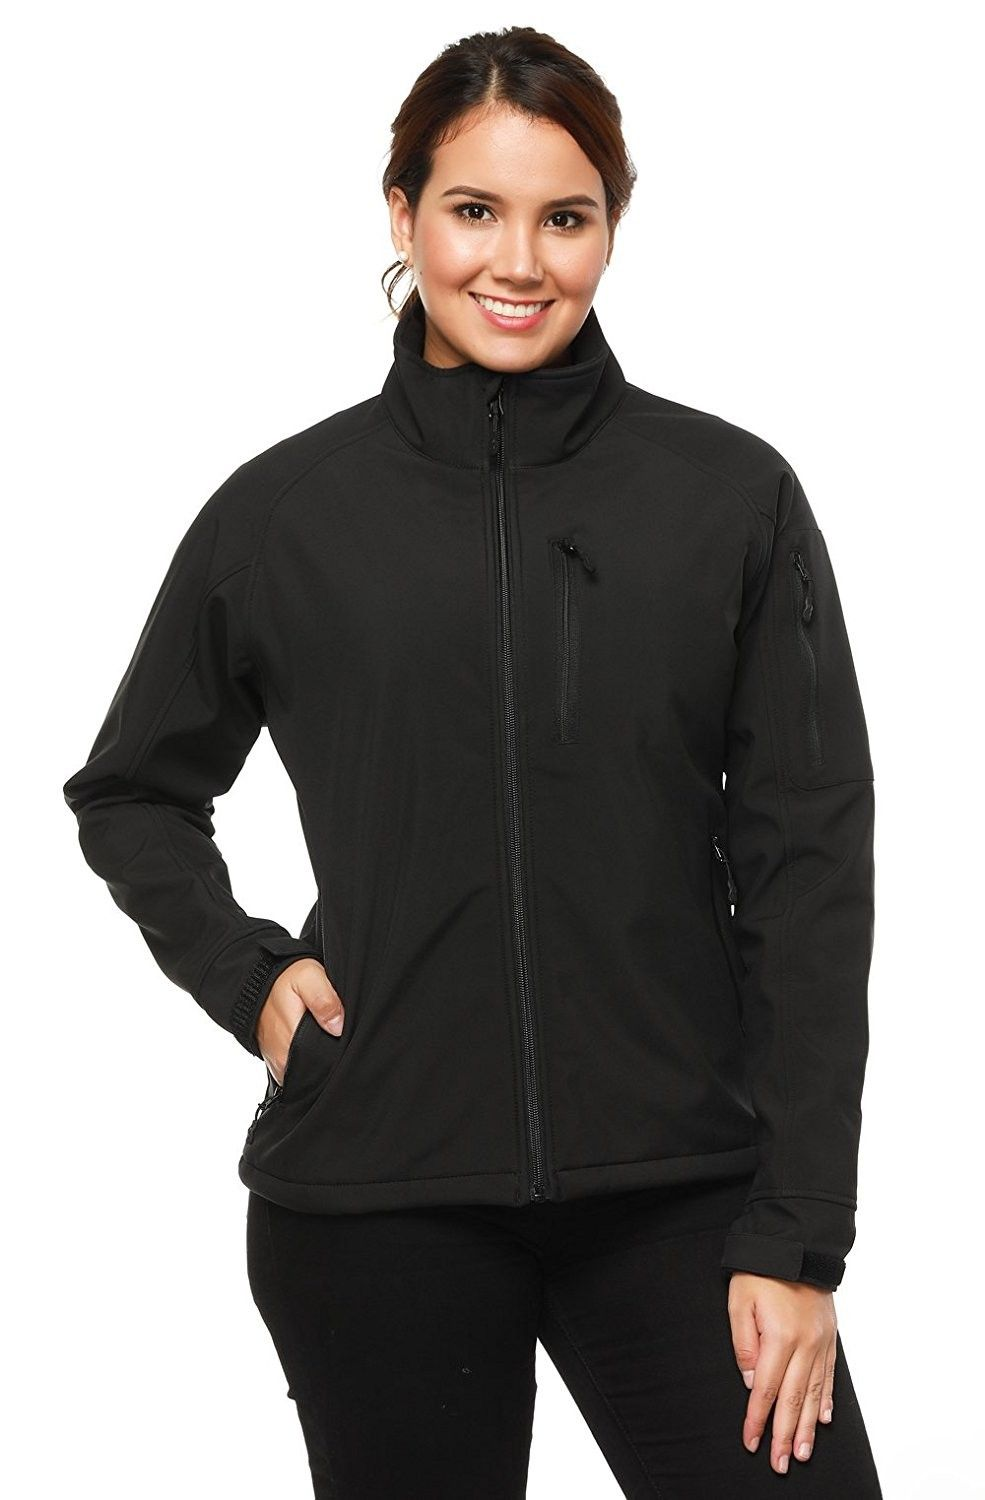 Women S Clothing Coats Jackets Vests Active Performance Insulated Shells Mier Women S Softshell Outdoor Front Z Zip Jackets Women Clothes Sale Jackets [ 1500 x 985 Pixel ]